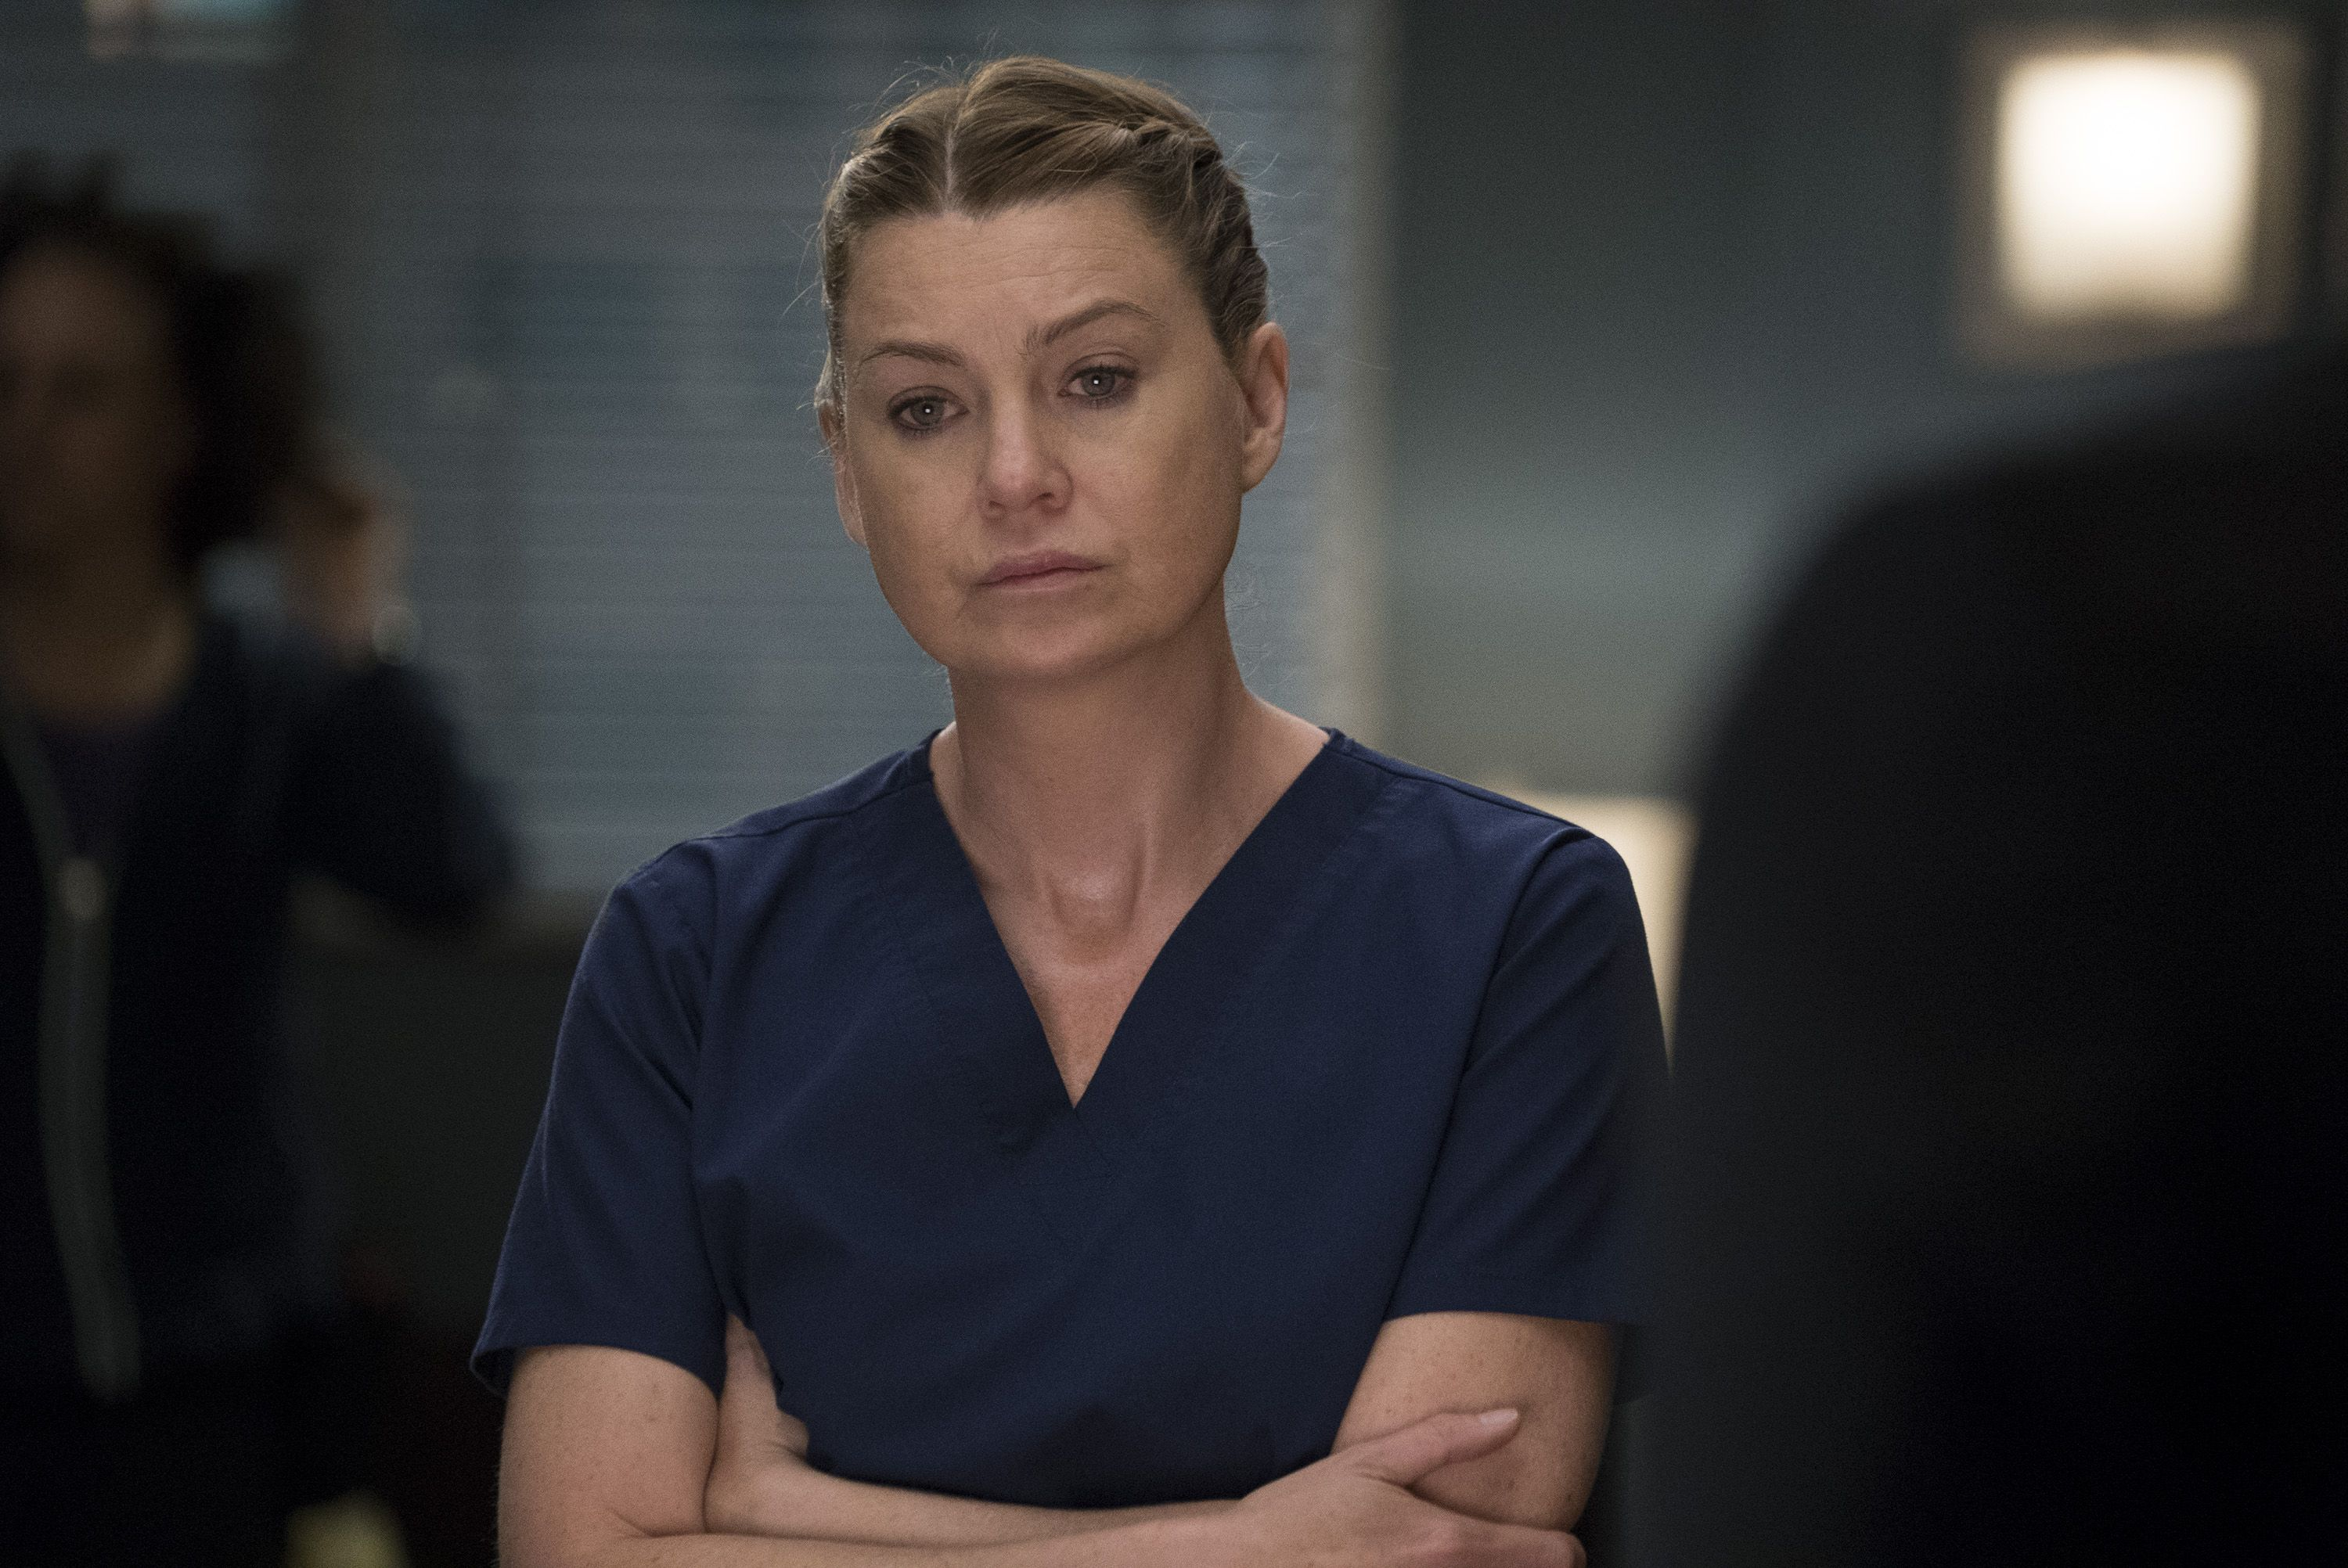 Greys Anatomy Fans Devastated After Another Heartbreaking Death